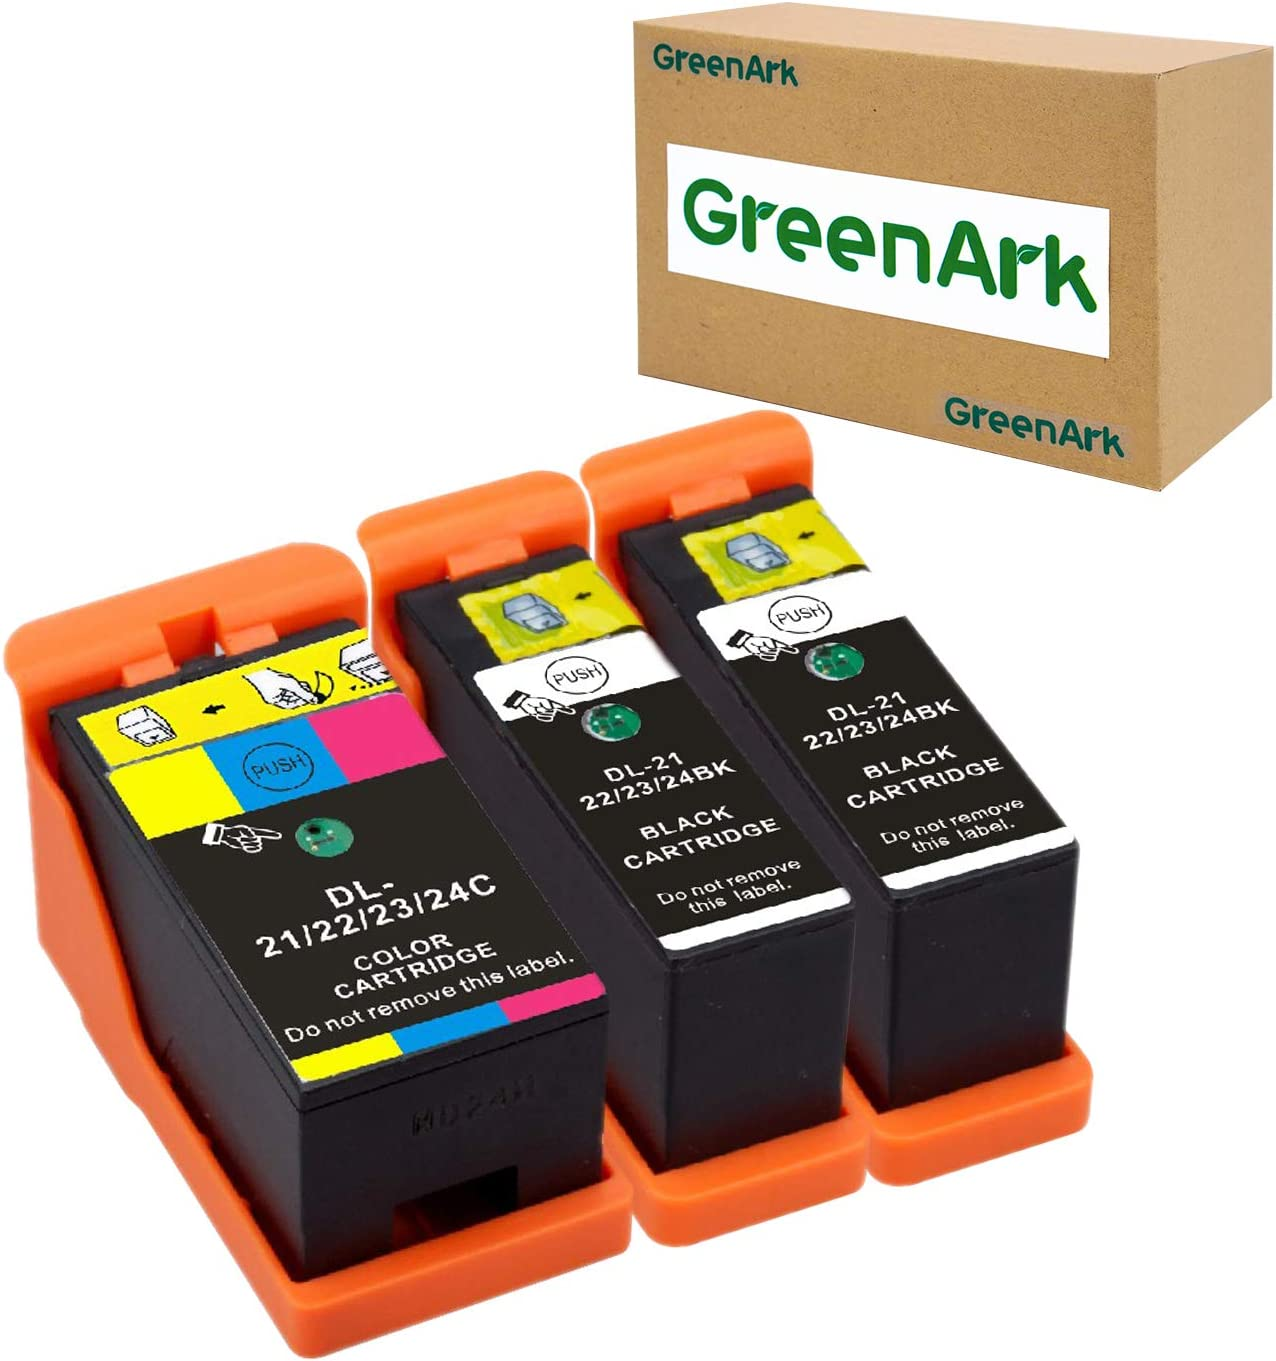 GREENARK Compatible for Dell Series 21 Ink Cartridges Use for Dell V313w V515w P513w V715w P713w Printers 3 Pack, (2 Black and 1 Color) for Dell Series 21, Series 22, Series 23, Series 24